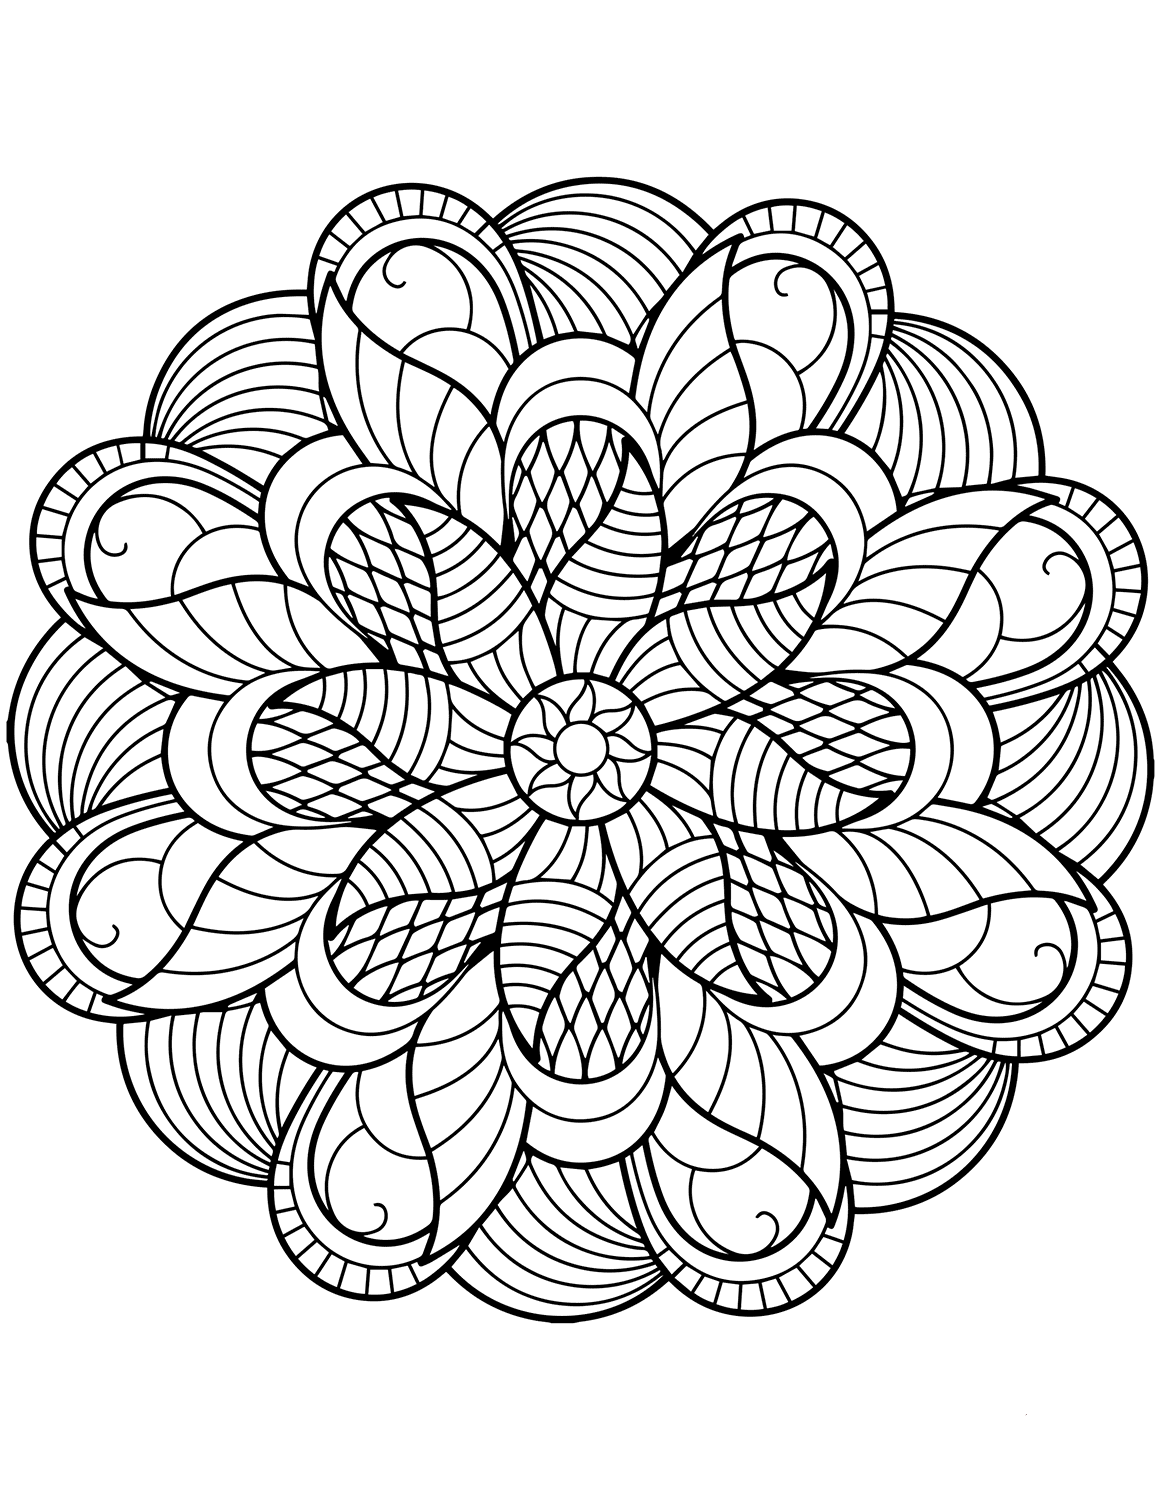 mandalas coloring pages writer39s within mandala pages mandalas coloring